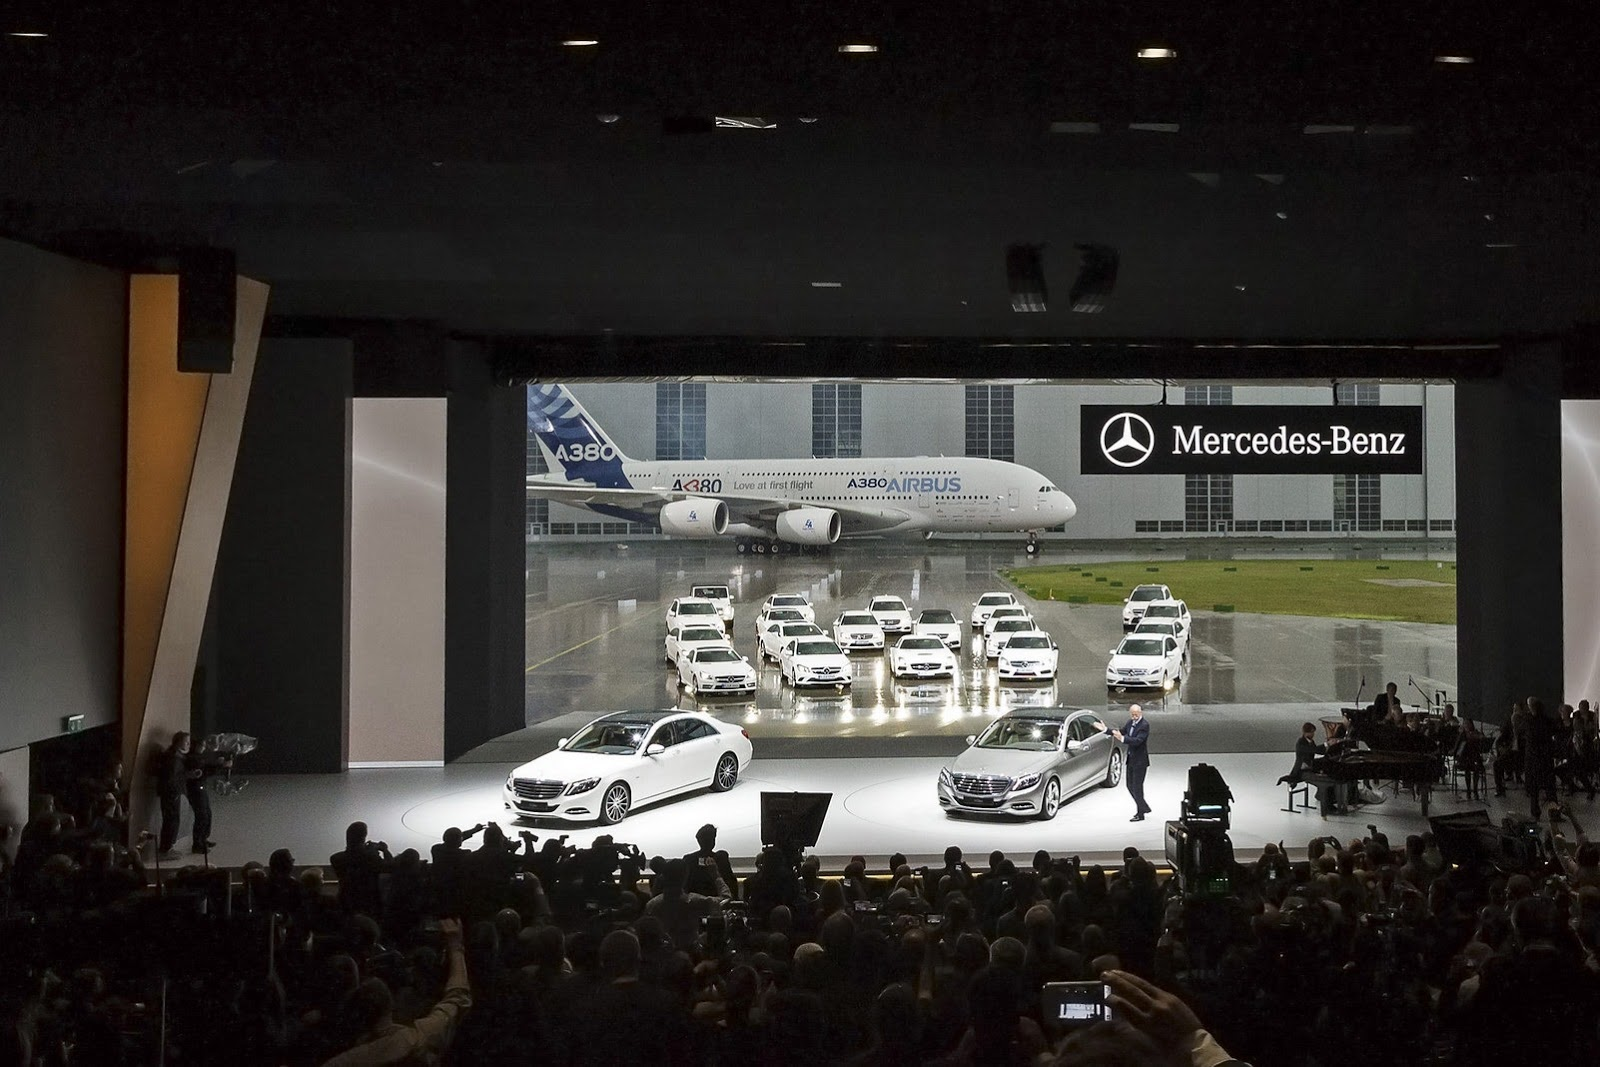 2014 Mercedes Benz S-Class Reveal Event - SMADE MEDIA (5)